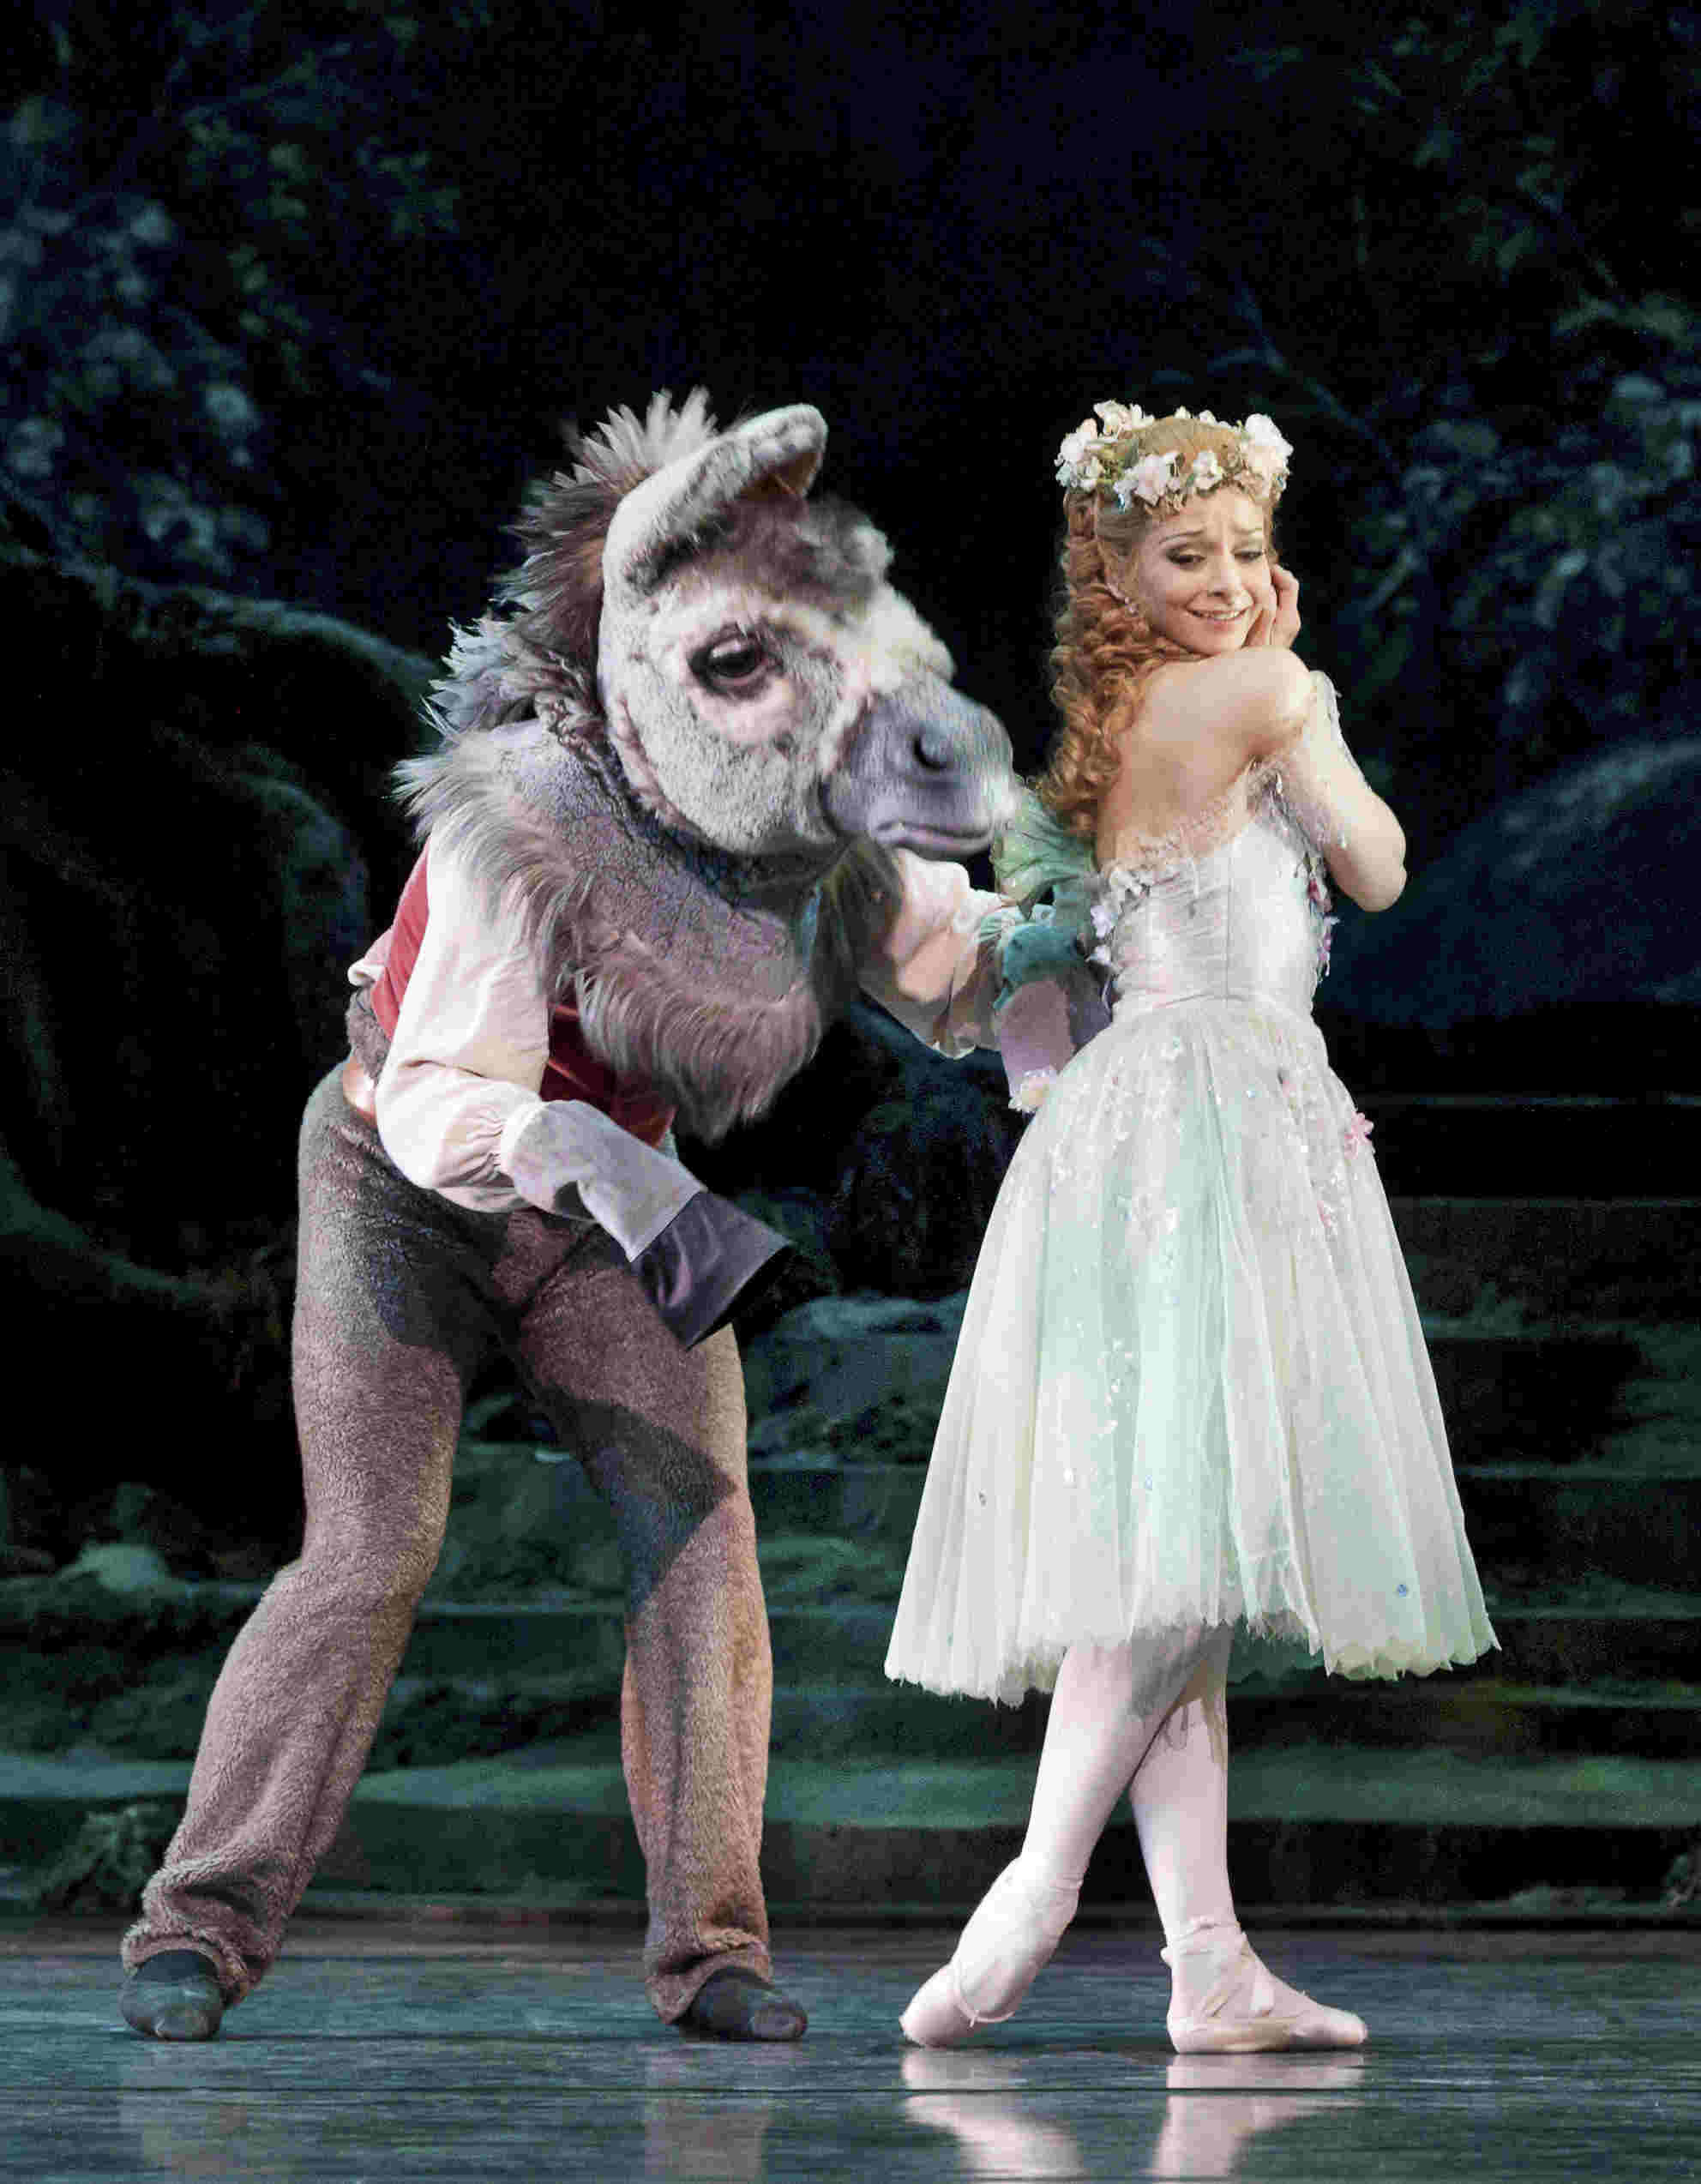 Roberta Marquez as Titania and Bennet Gartside as Bottom in The Dream